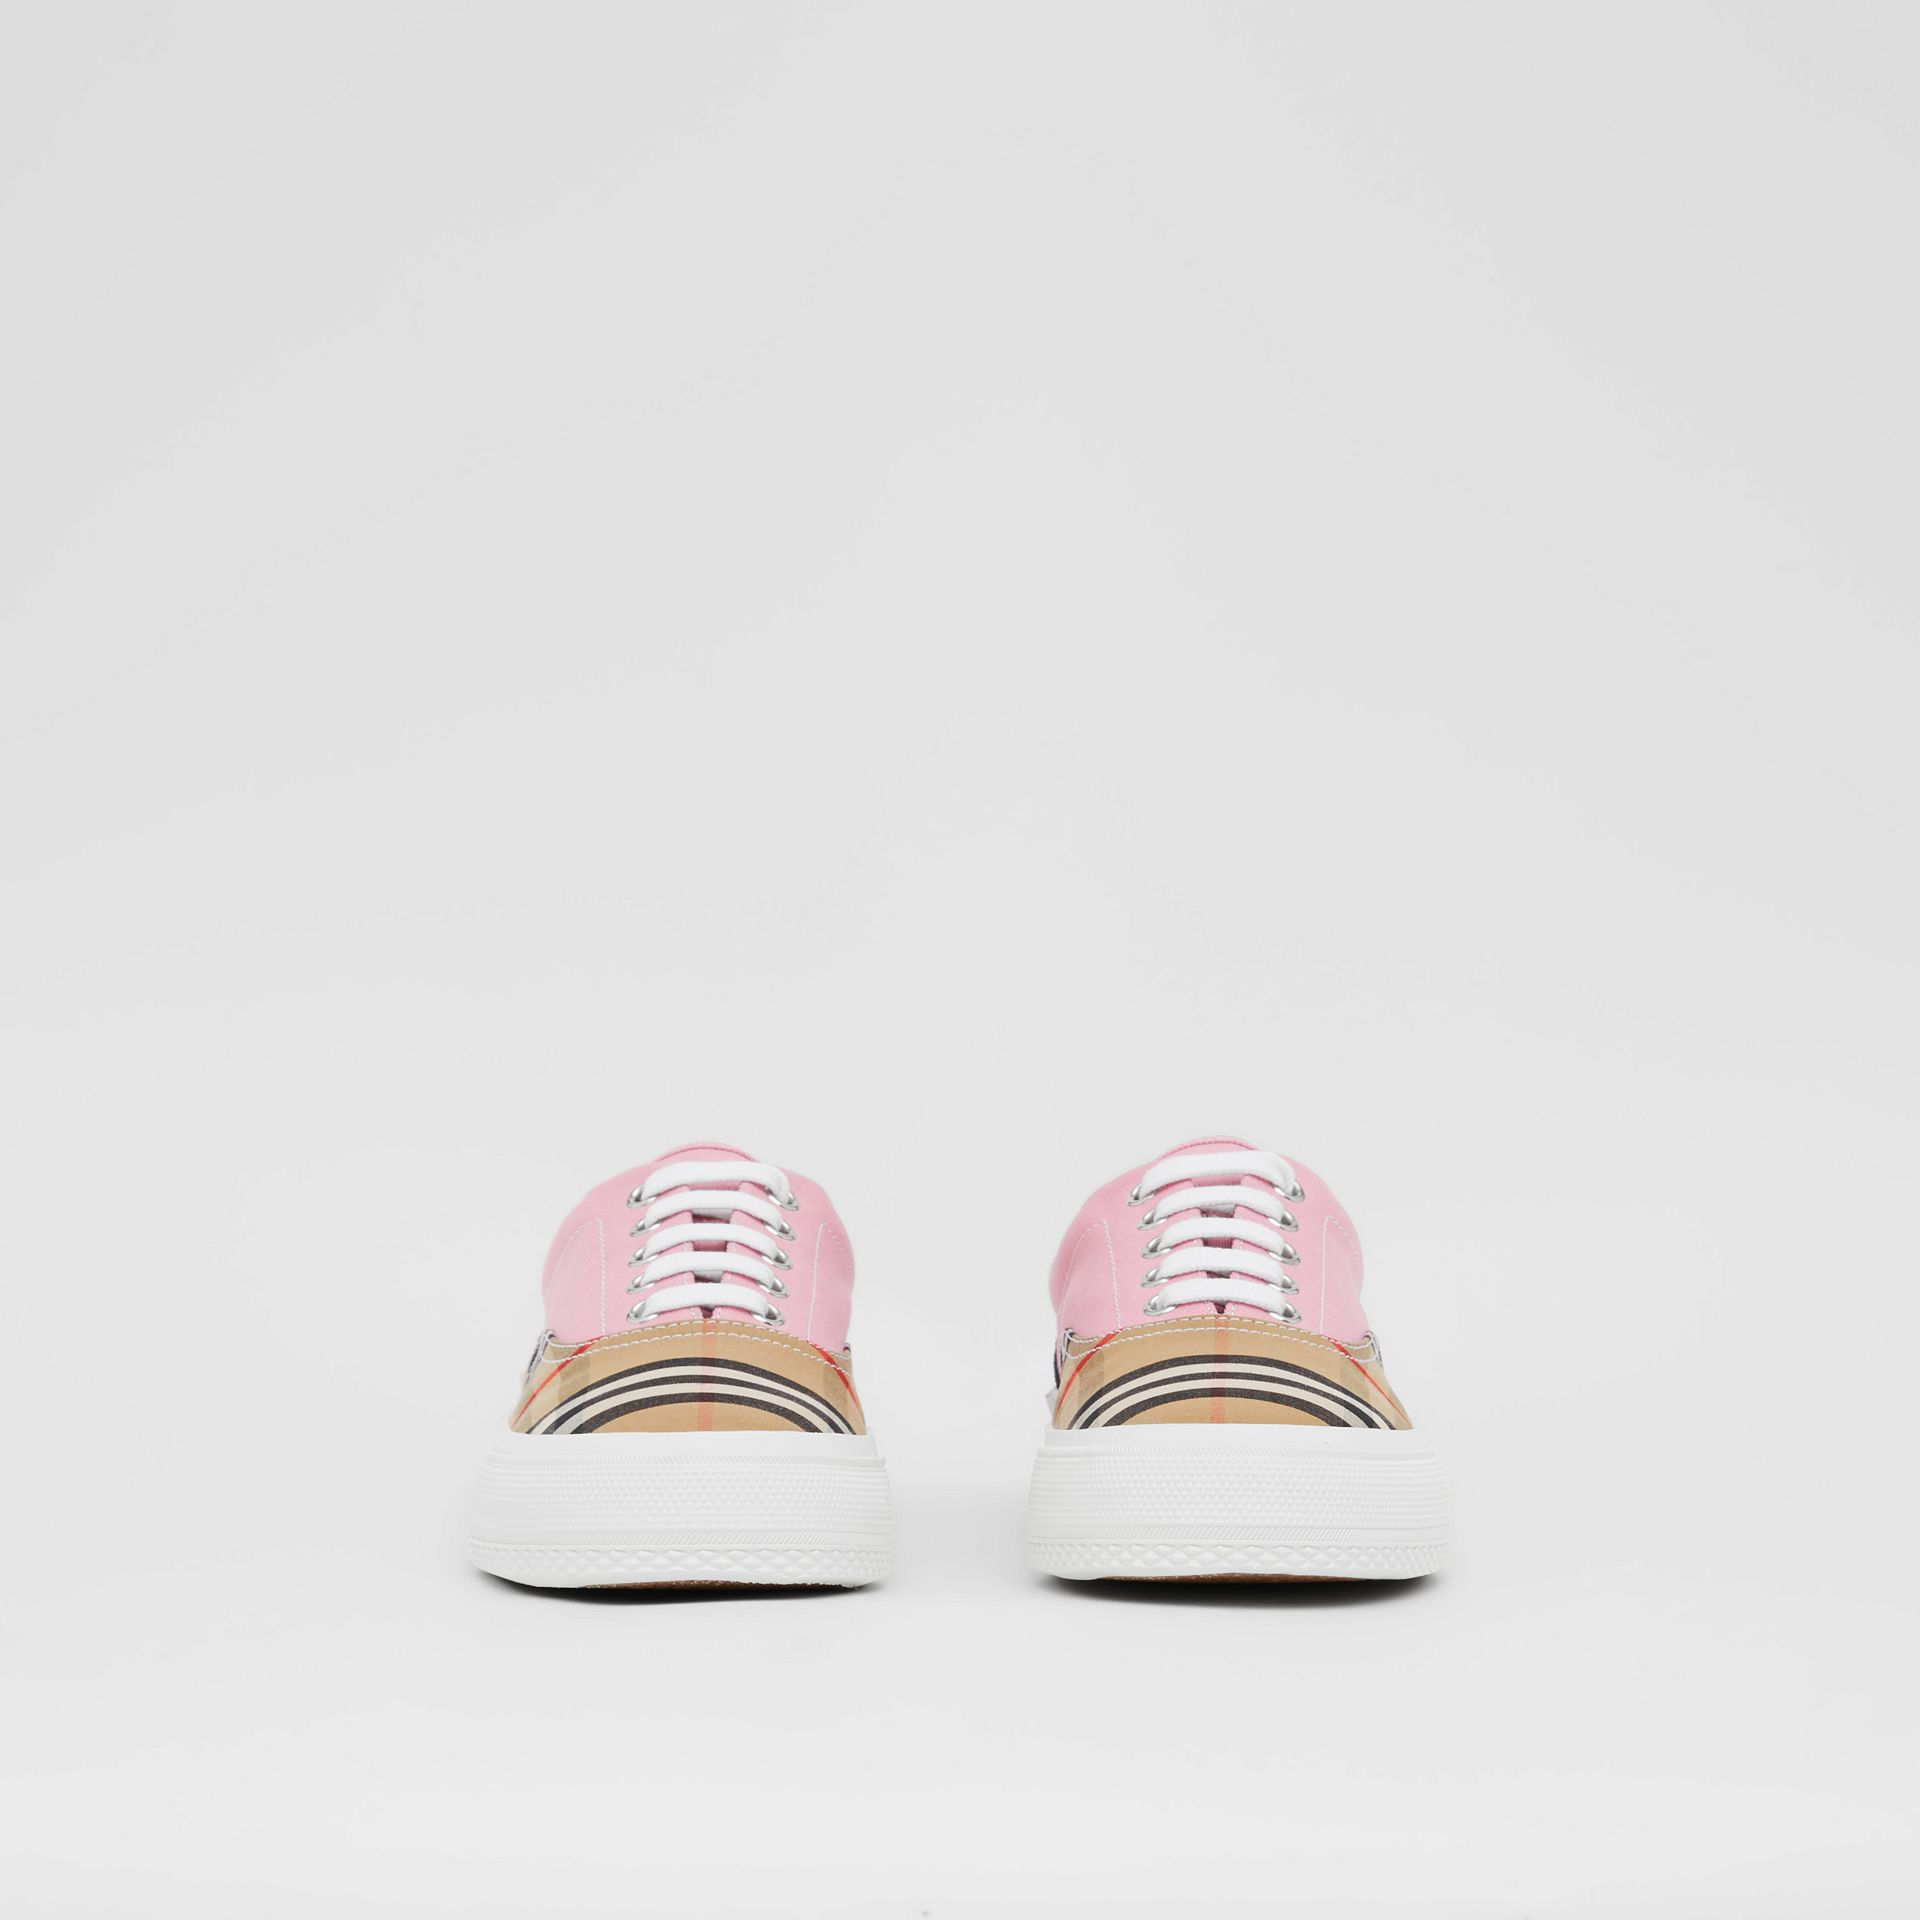 Vintage Check, Cotton Canvas and Suede Sneakers in Archive Beige/pink - Women | Burberry Hong Kong S.A.R - gallery image 3